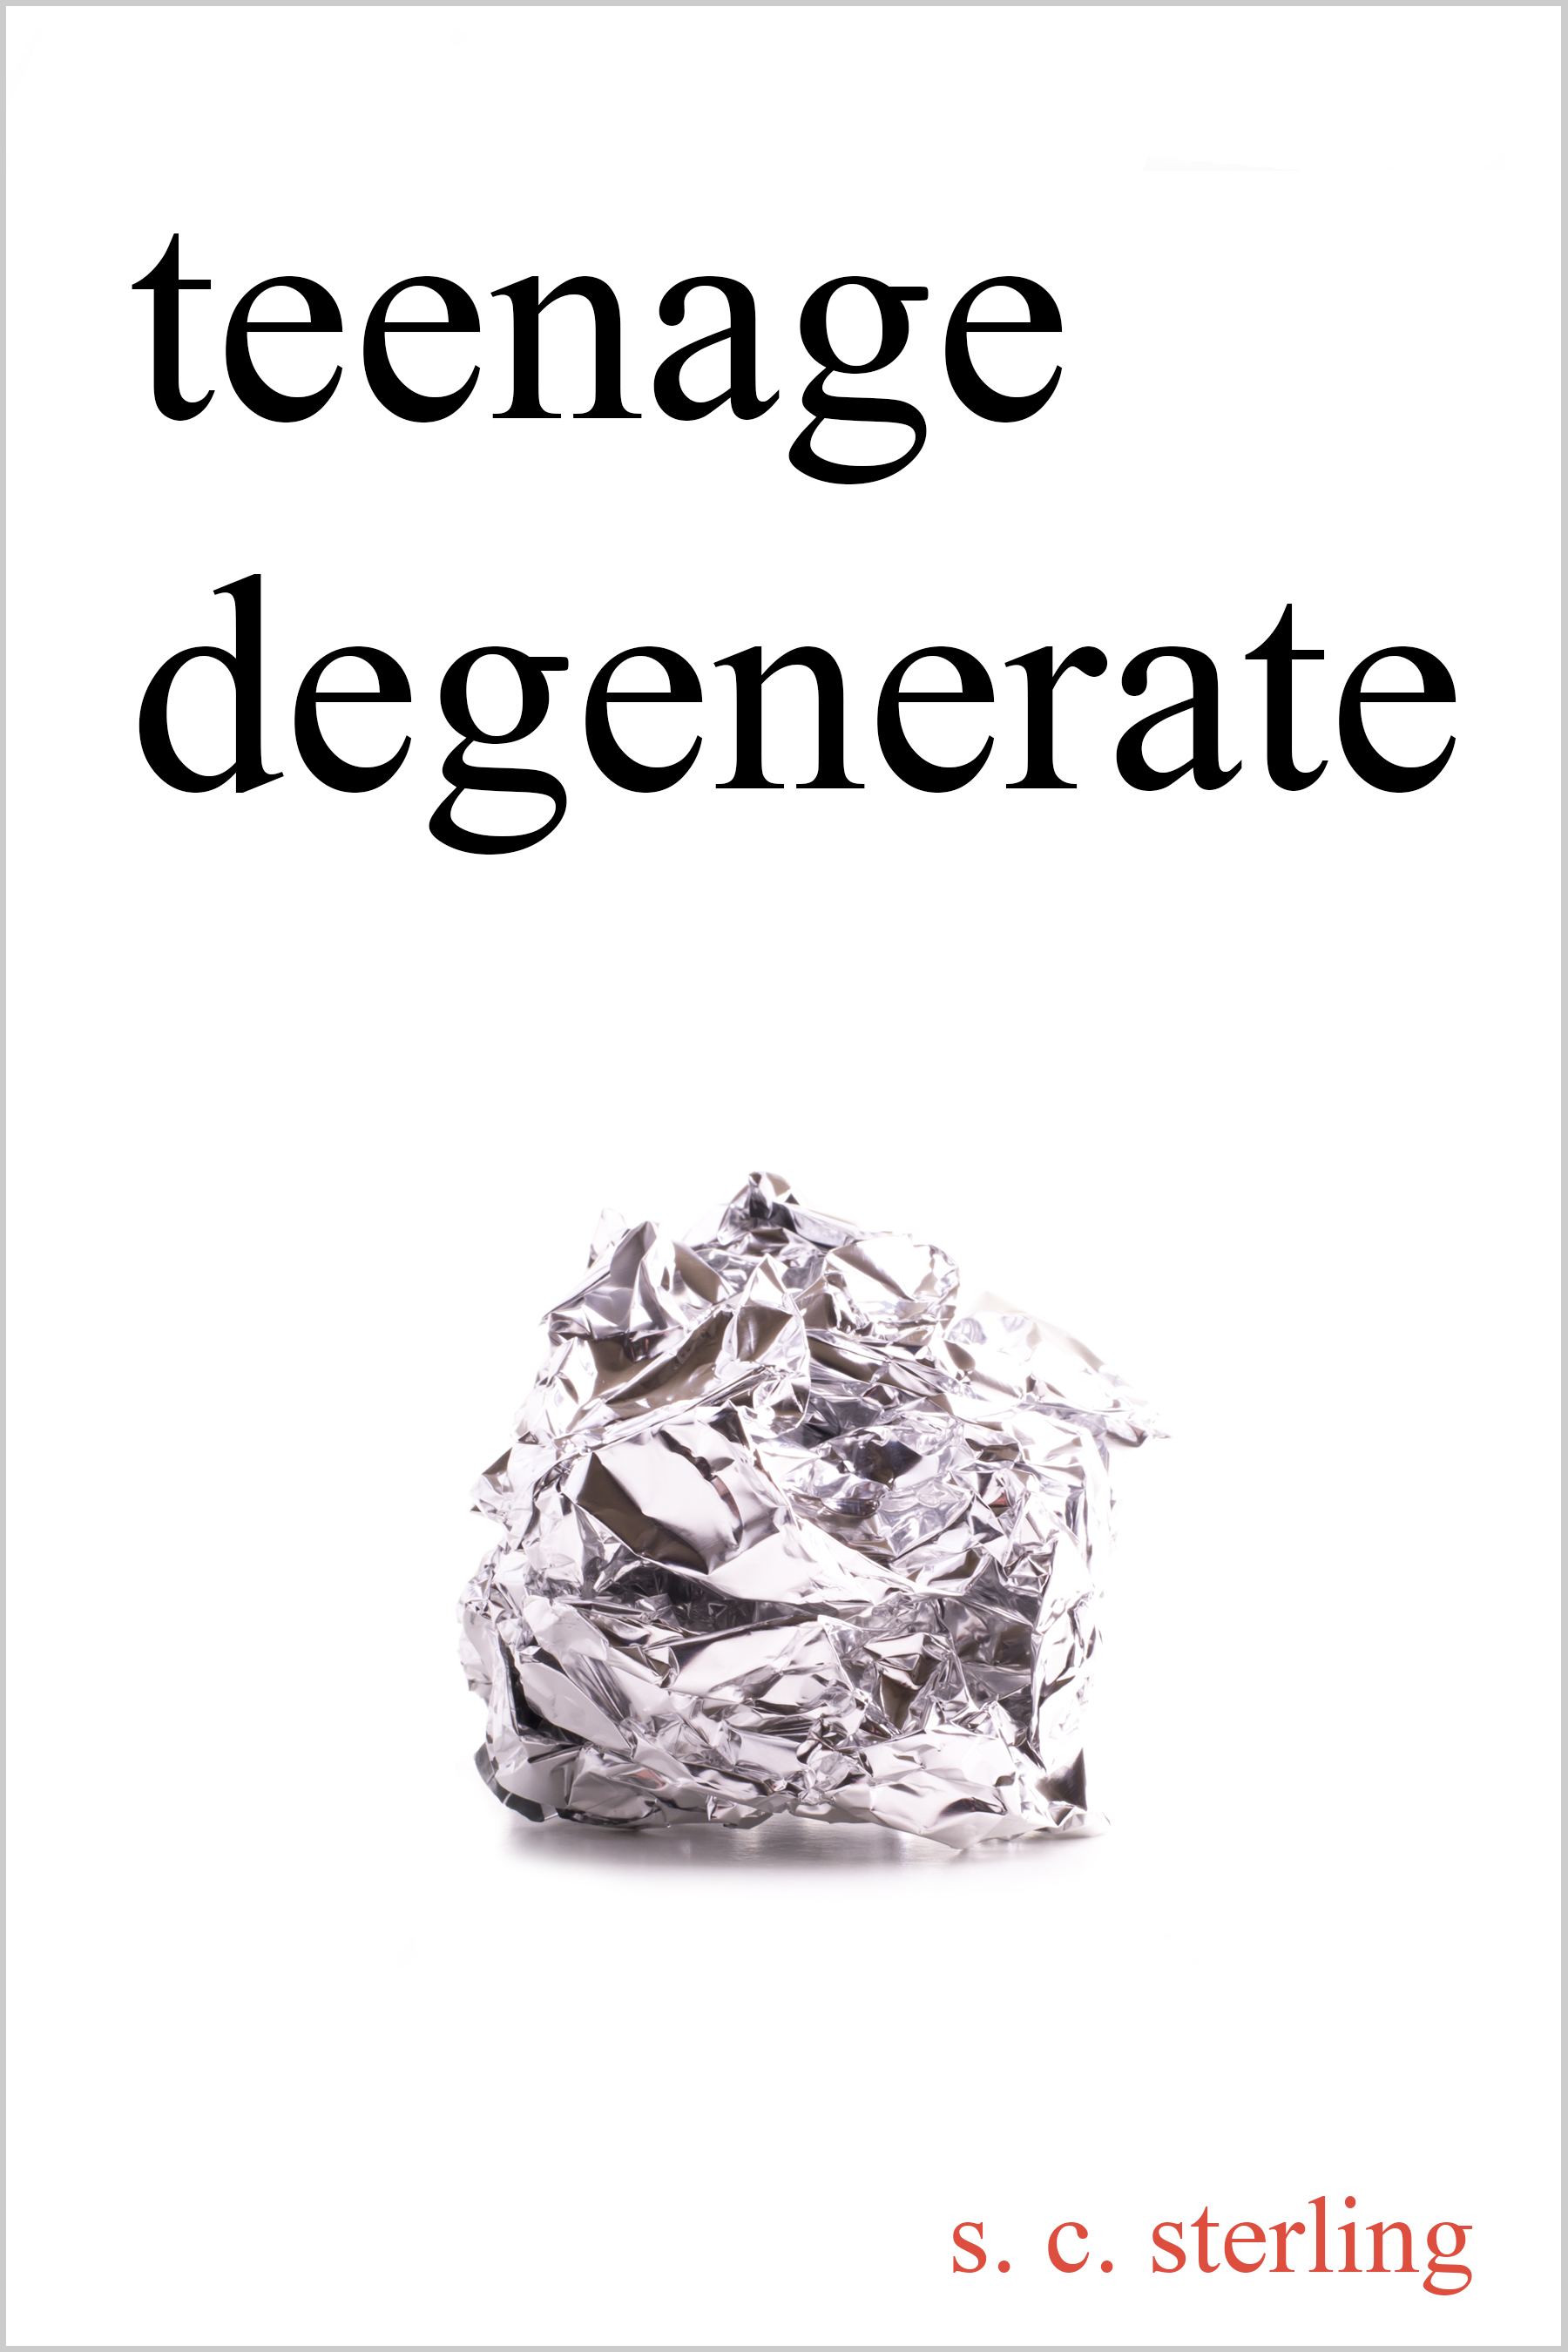 Pre-Order Teenage Degenerate on Amazon